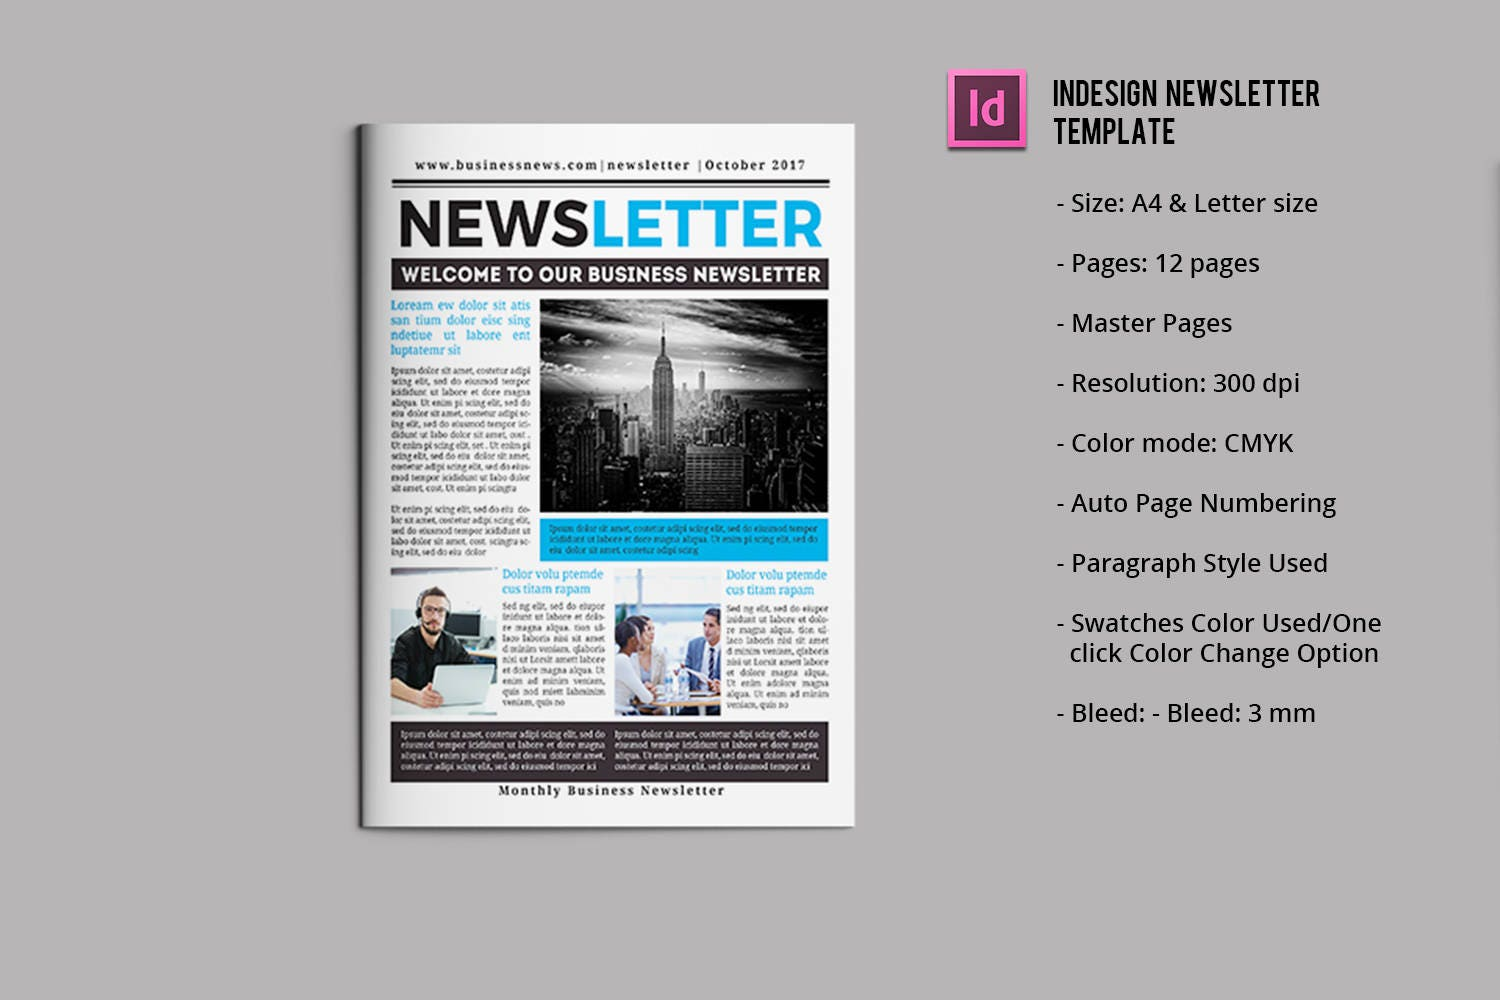 il_fullxfull.1278686156_p4wi  Page Newsletter Template Indesign on indesign layout templates, create your own newsletter templates, yearbook page layout templates, print newsletter templates,